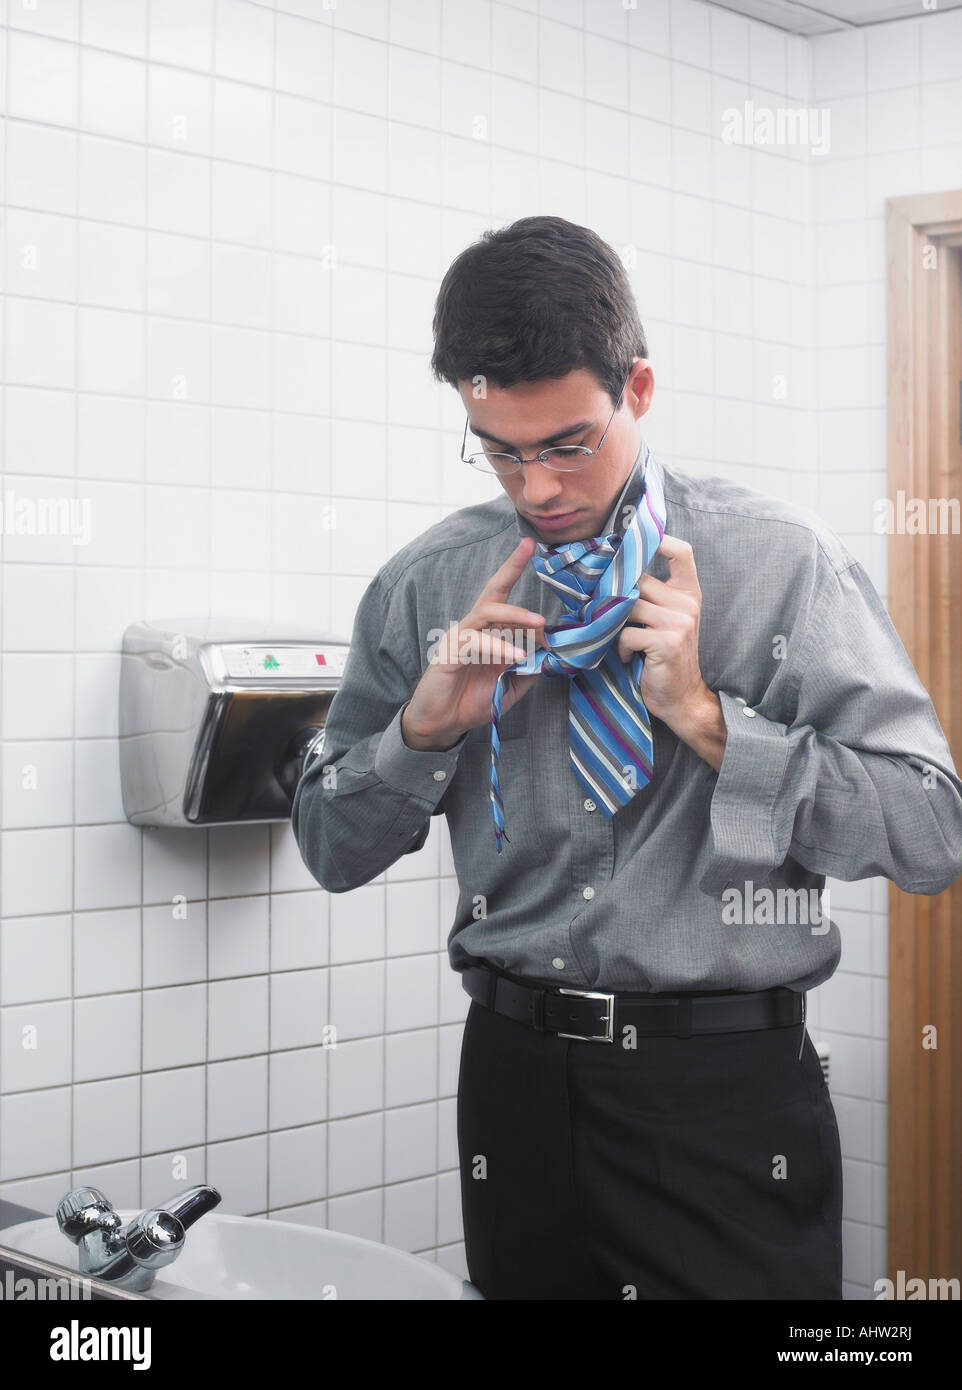 Man reflected in office washroom mirror doing up his tie Stock Photo